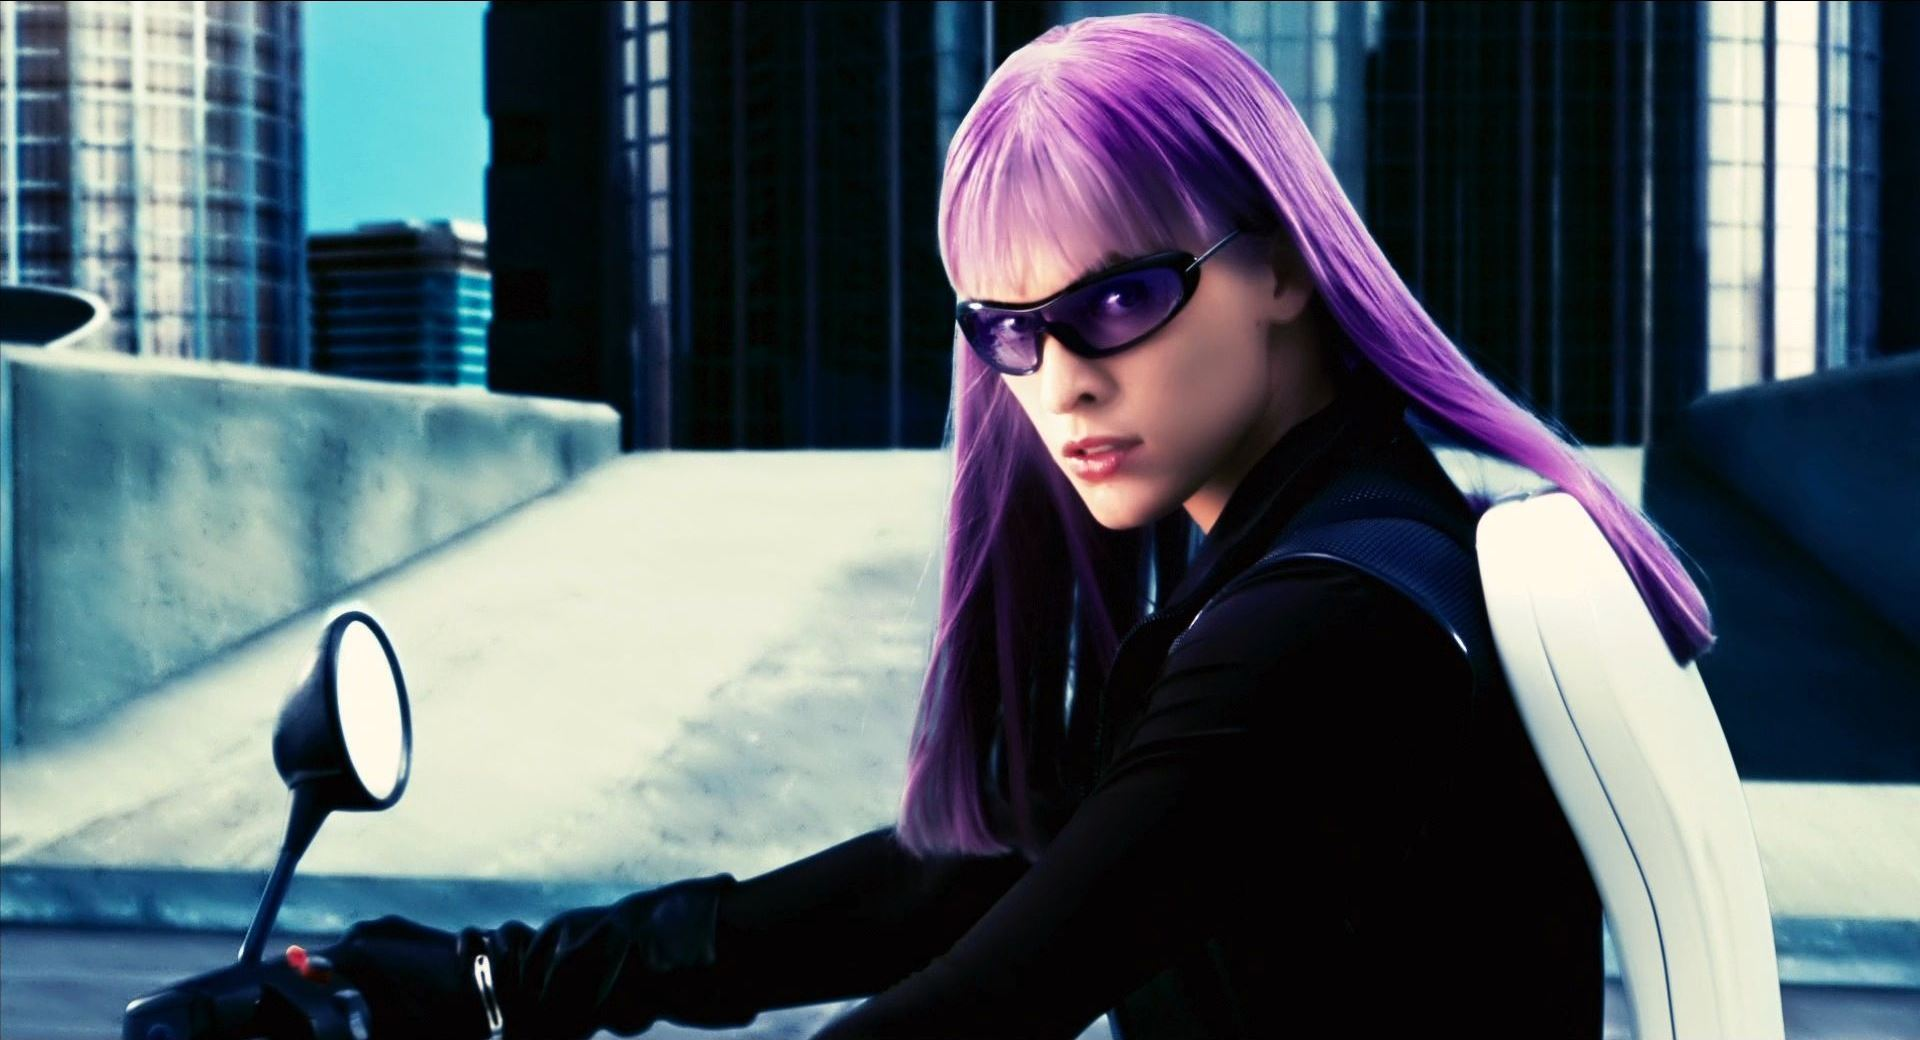 Violet (Milla Jovovich) on motorcycle in Ultraviolet (2006)